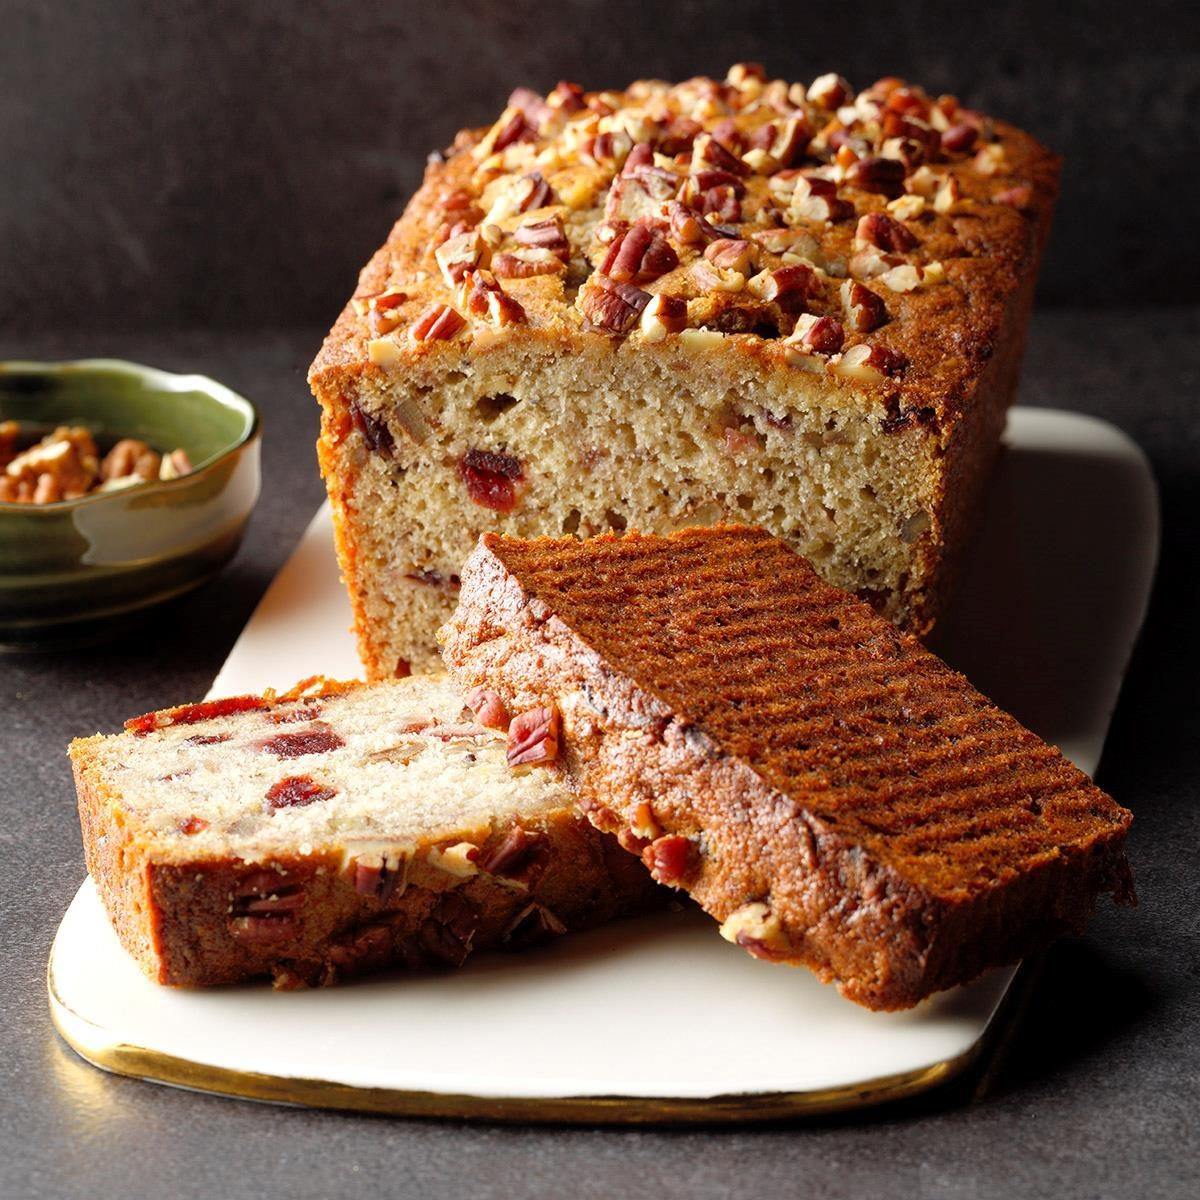 Your Guide to Quick Bread: A Simple, Delicious Bake